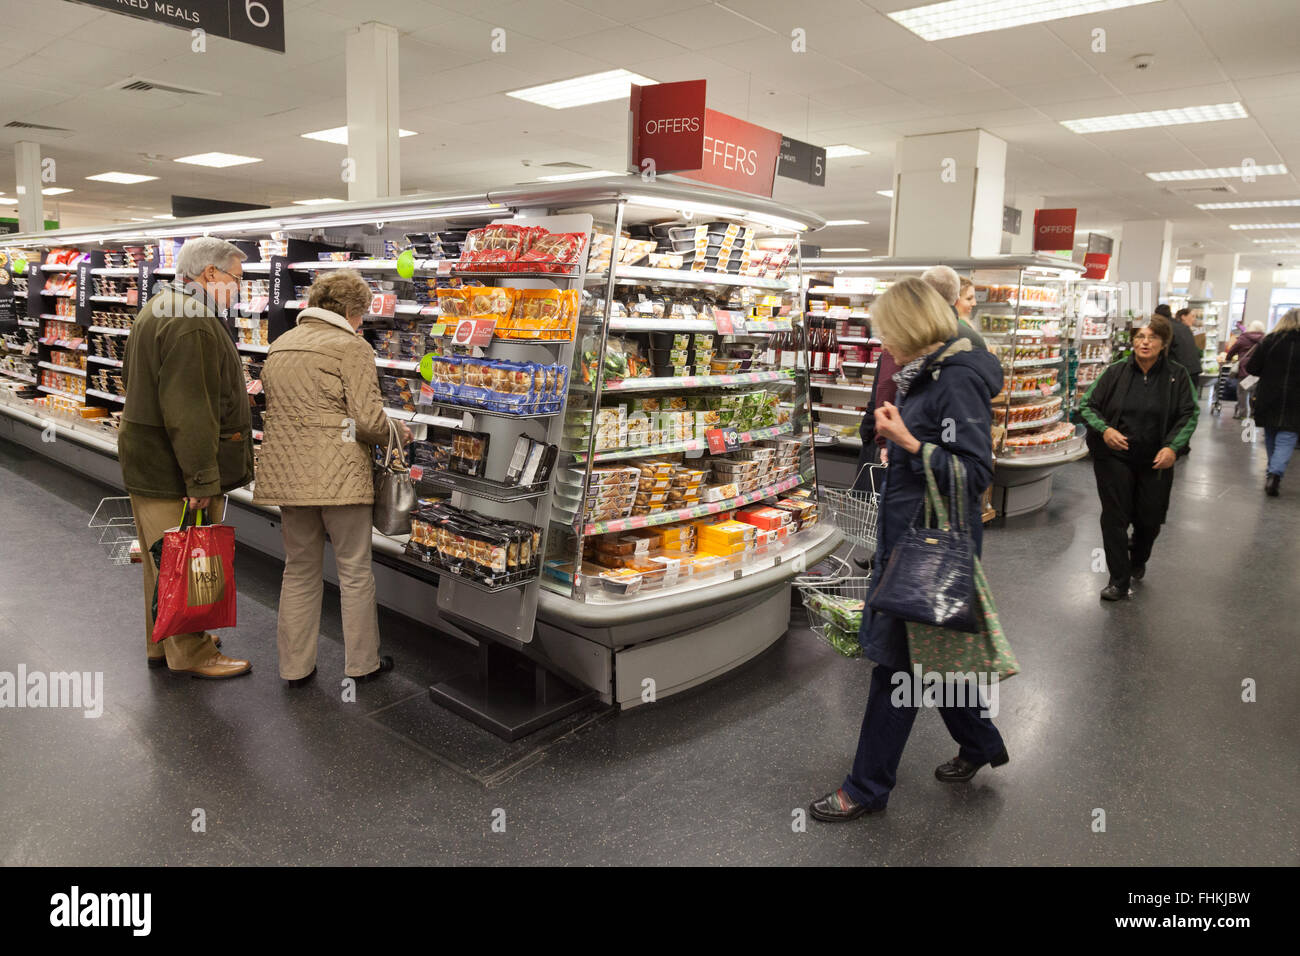 Marks and spencer cambridge stock photos marks and spencer people shopping for food in an marks and spencer ms store cambridge uk izmirmasajfo